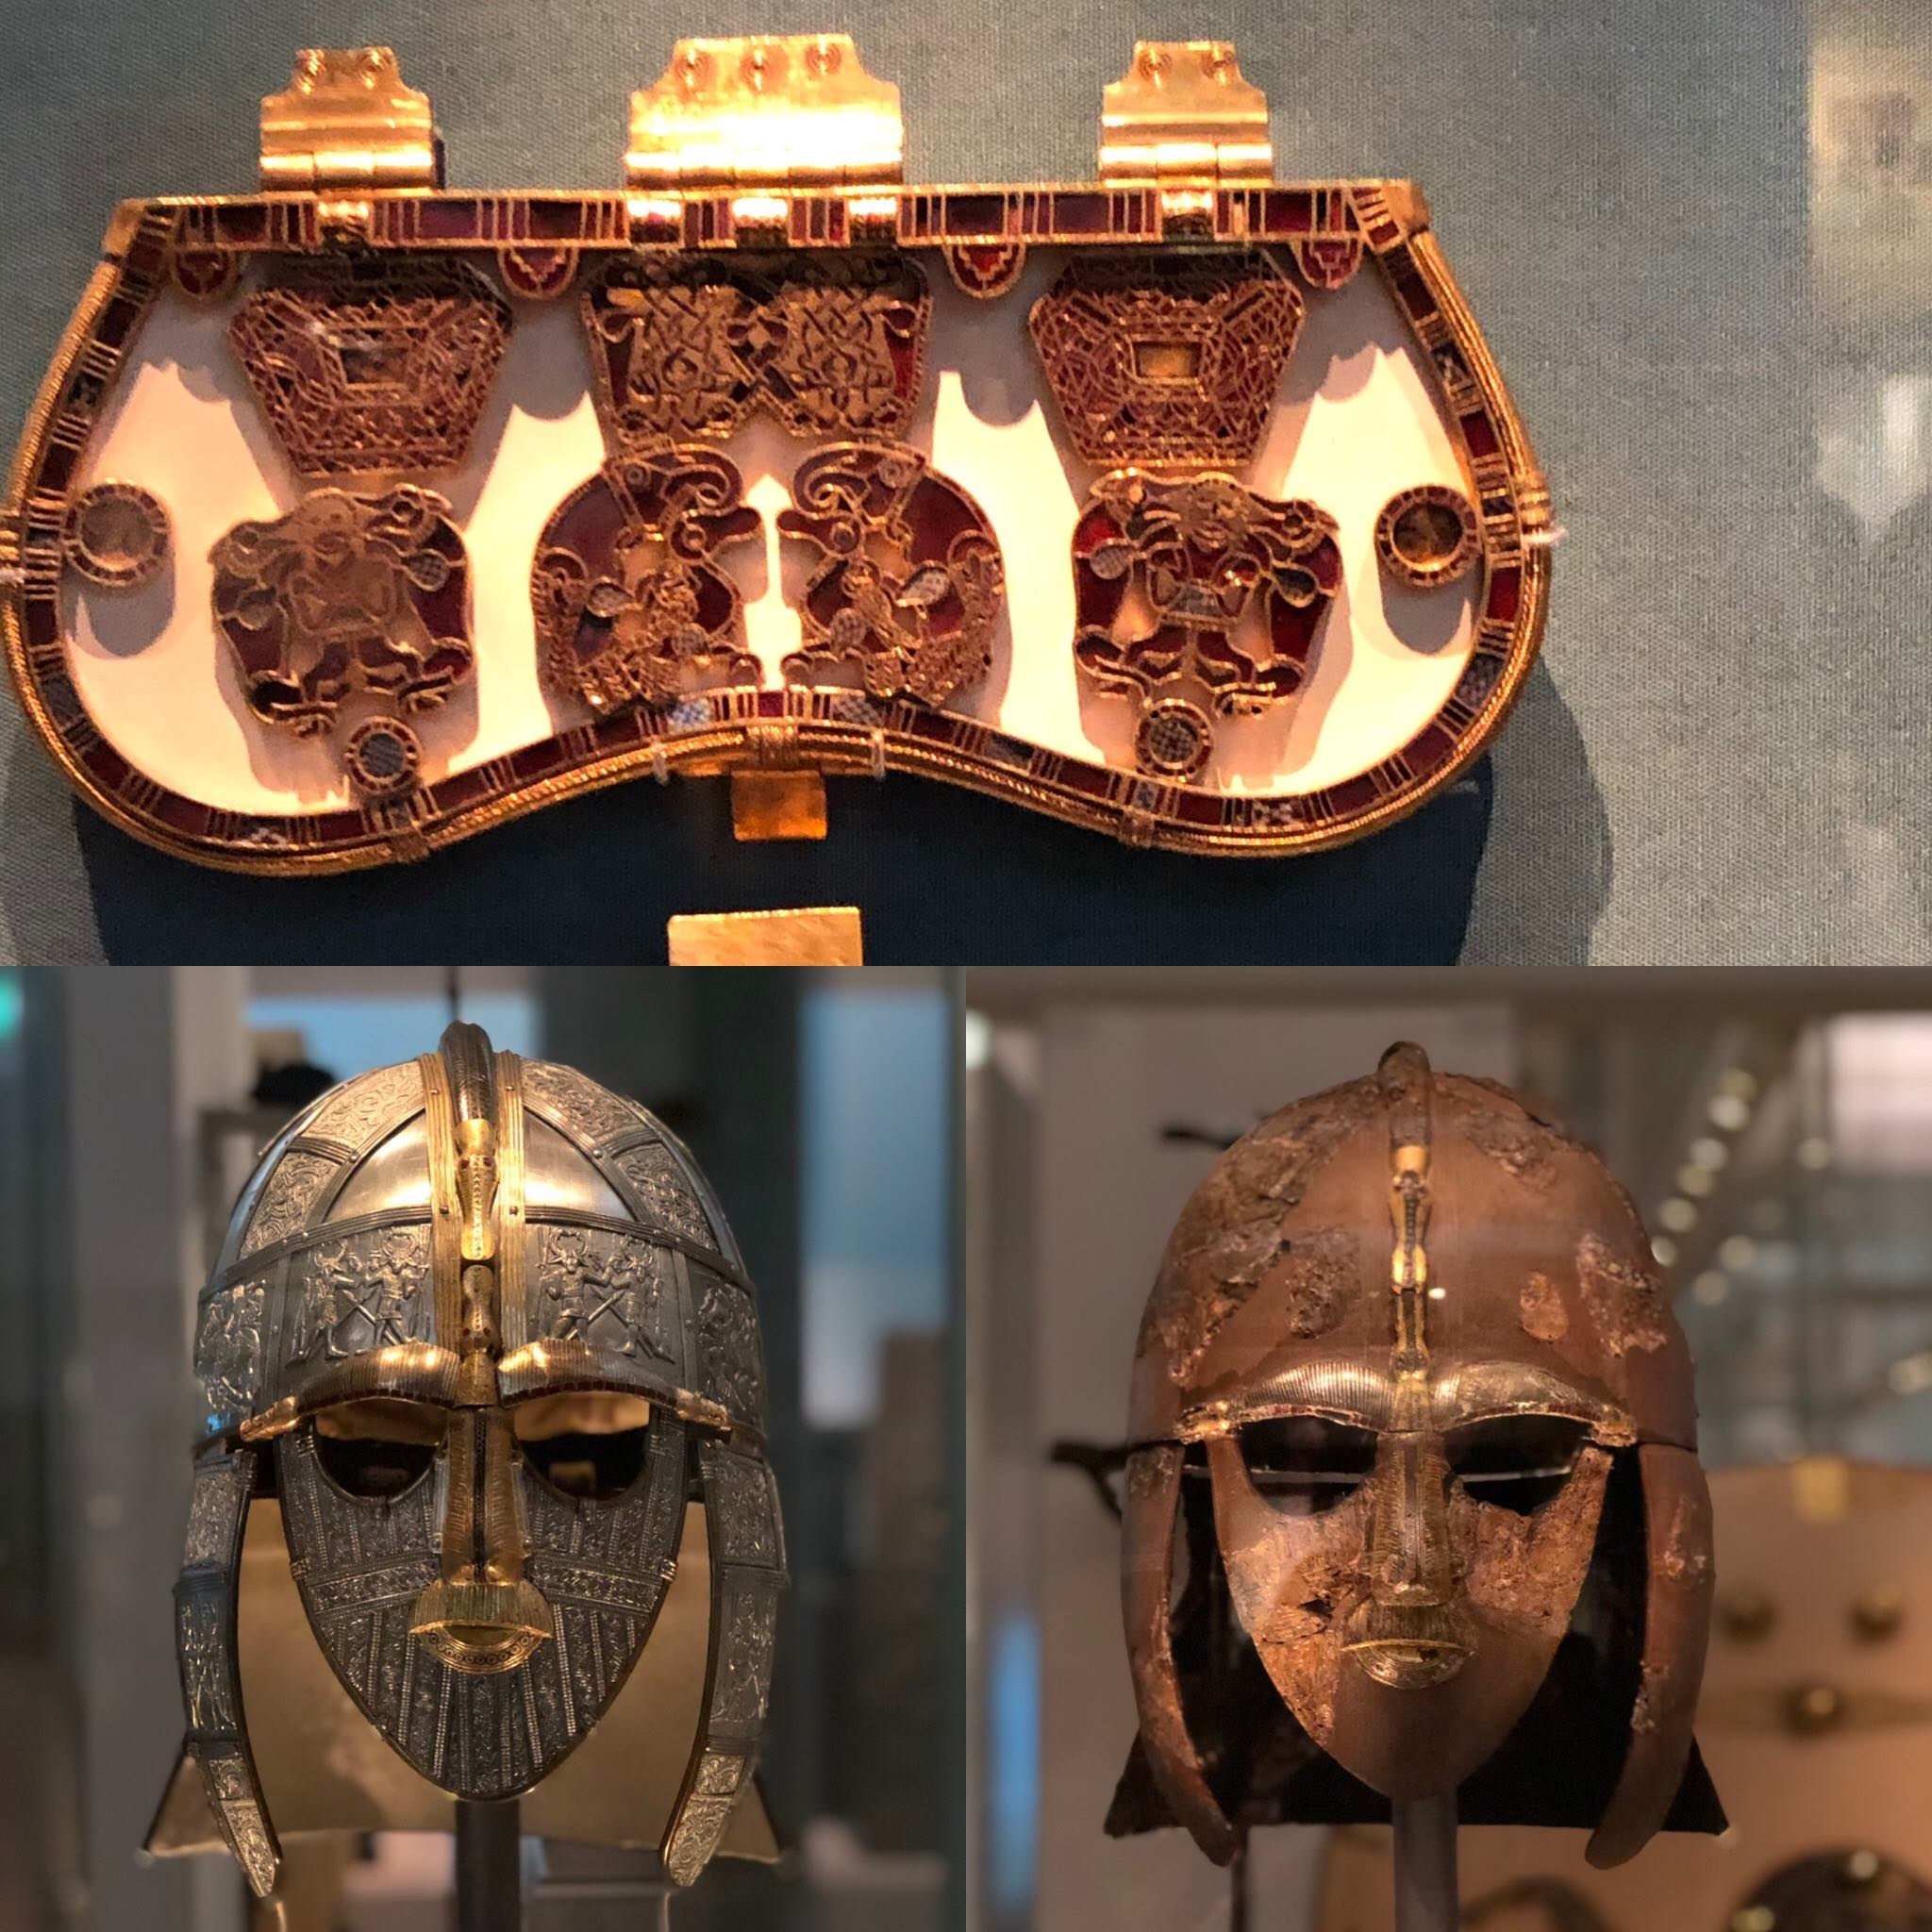 Sutton Hoo ship burial of an Anglo-Saxon grave dated early 600 AD. Purse lid of gold and cloisonne garnets and shiny reconstruction next to original helmet found on the site.